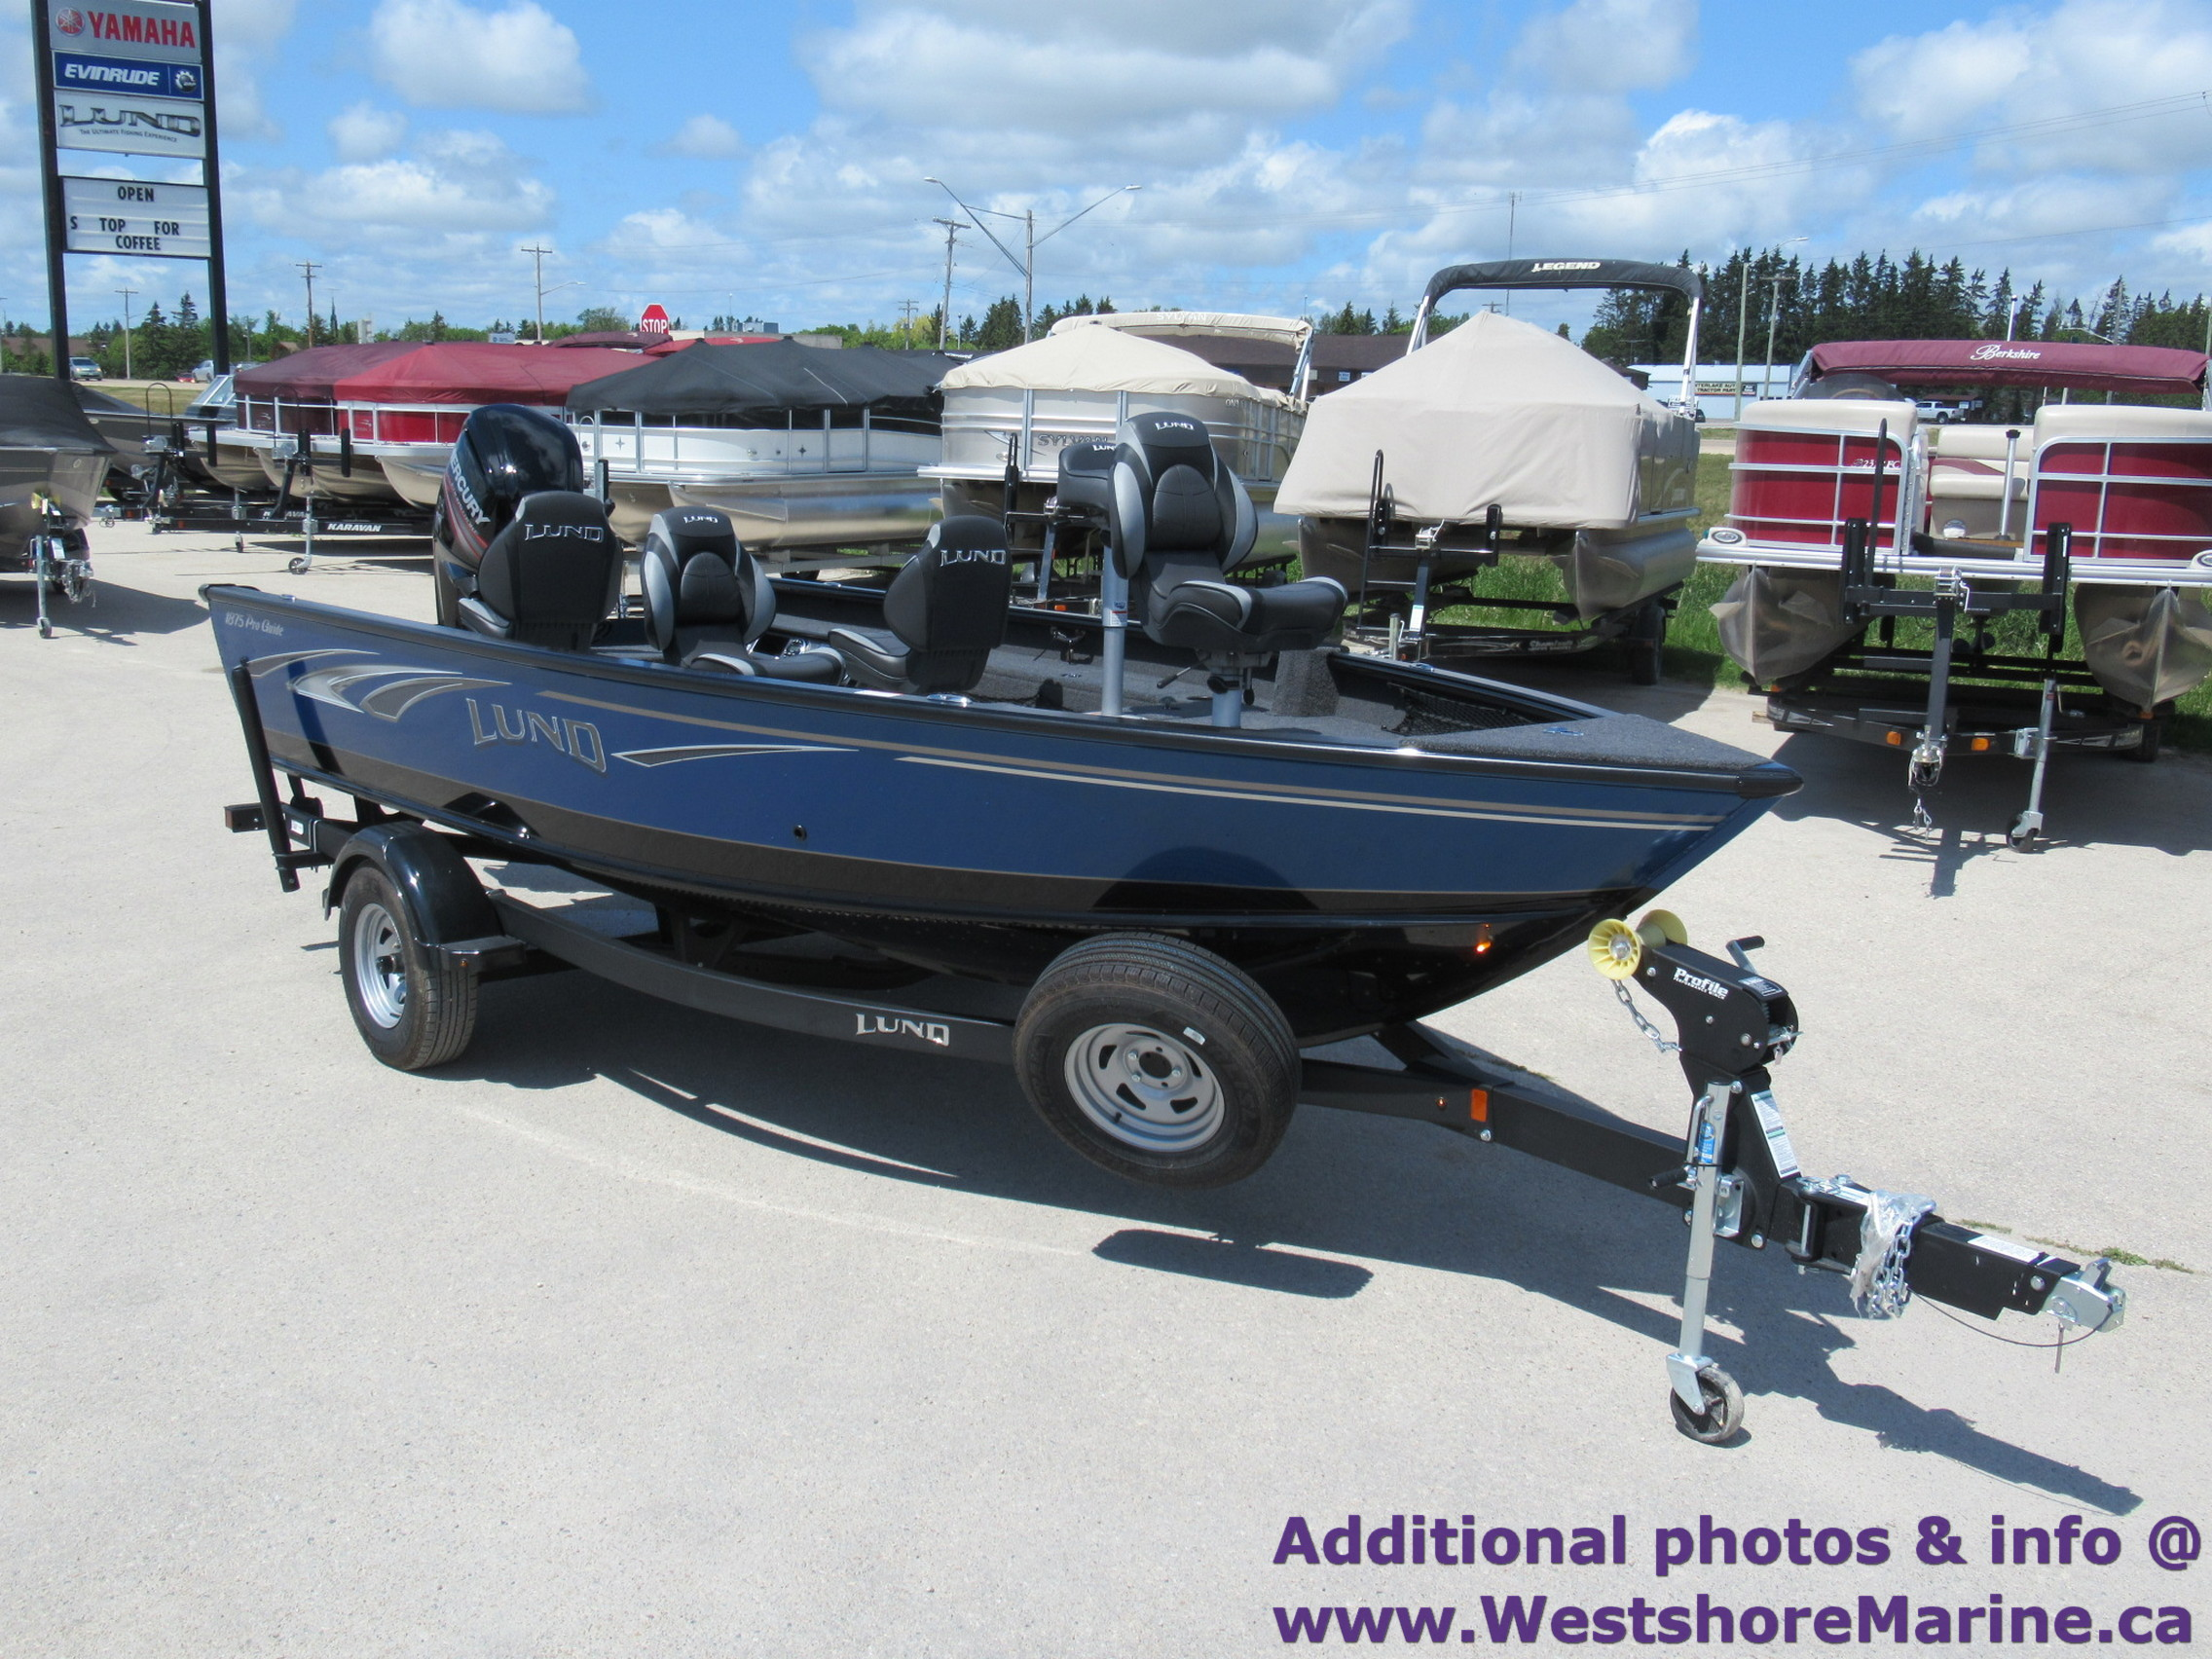 309 New Boats & Powersports in Stock in Arborg